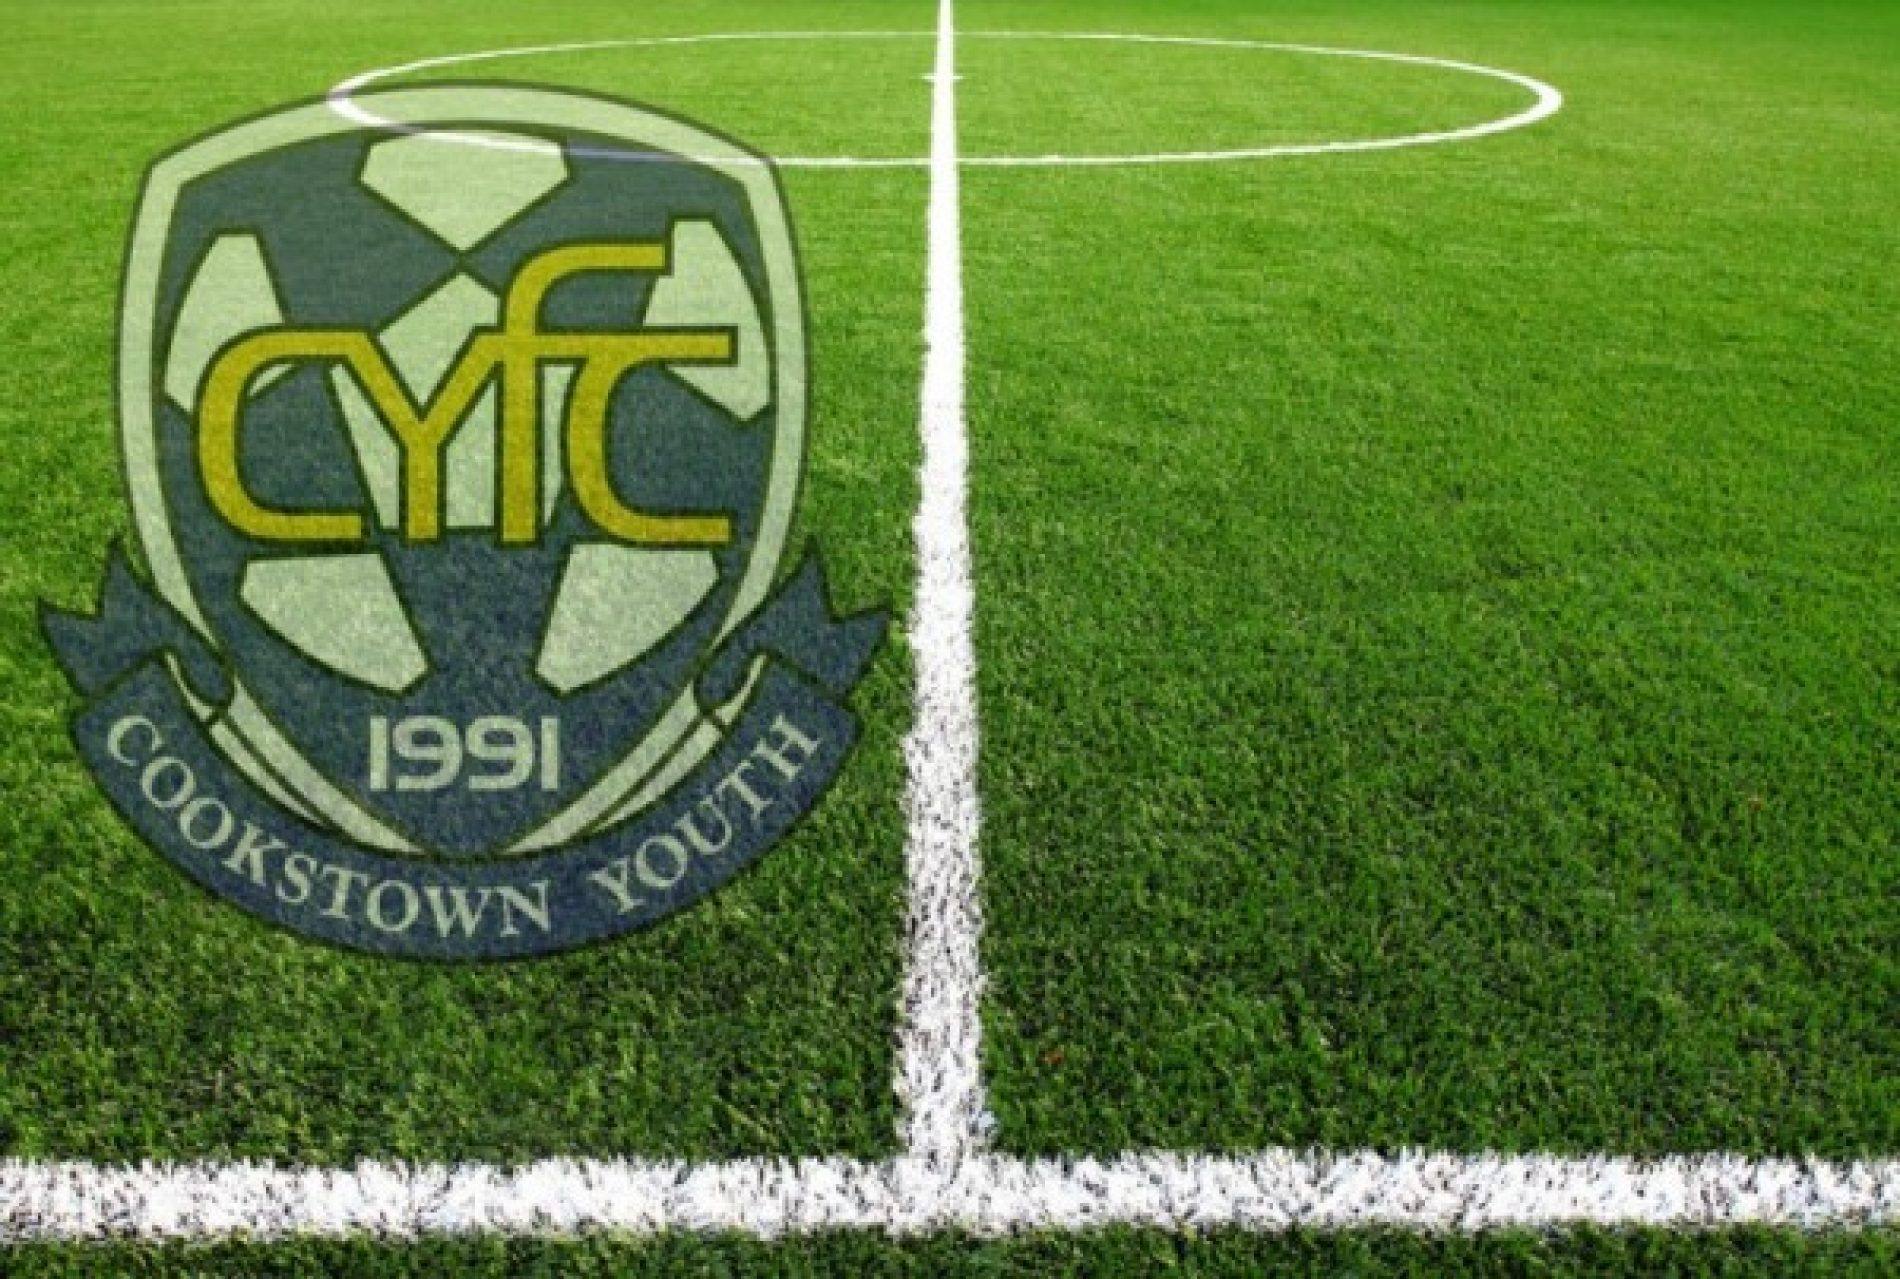 CYFC MATCH REPORTS FROM SATURDAY 22nd OCTOBER 2016